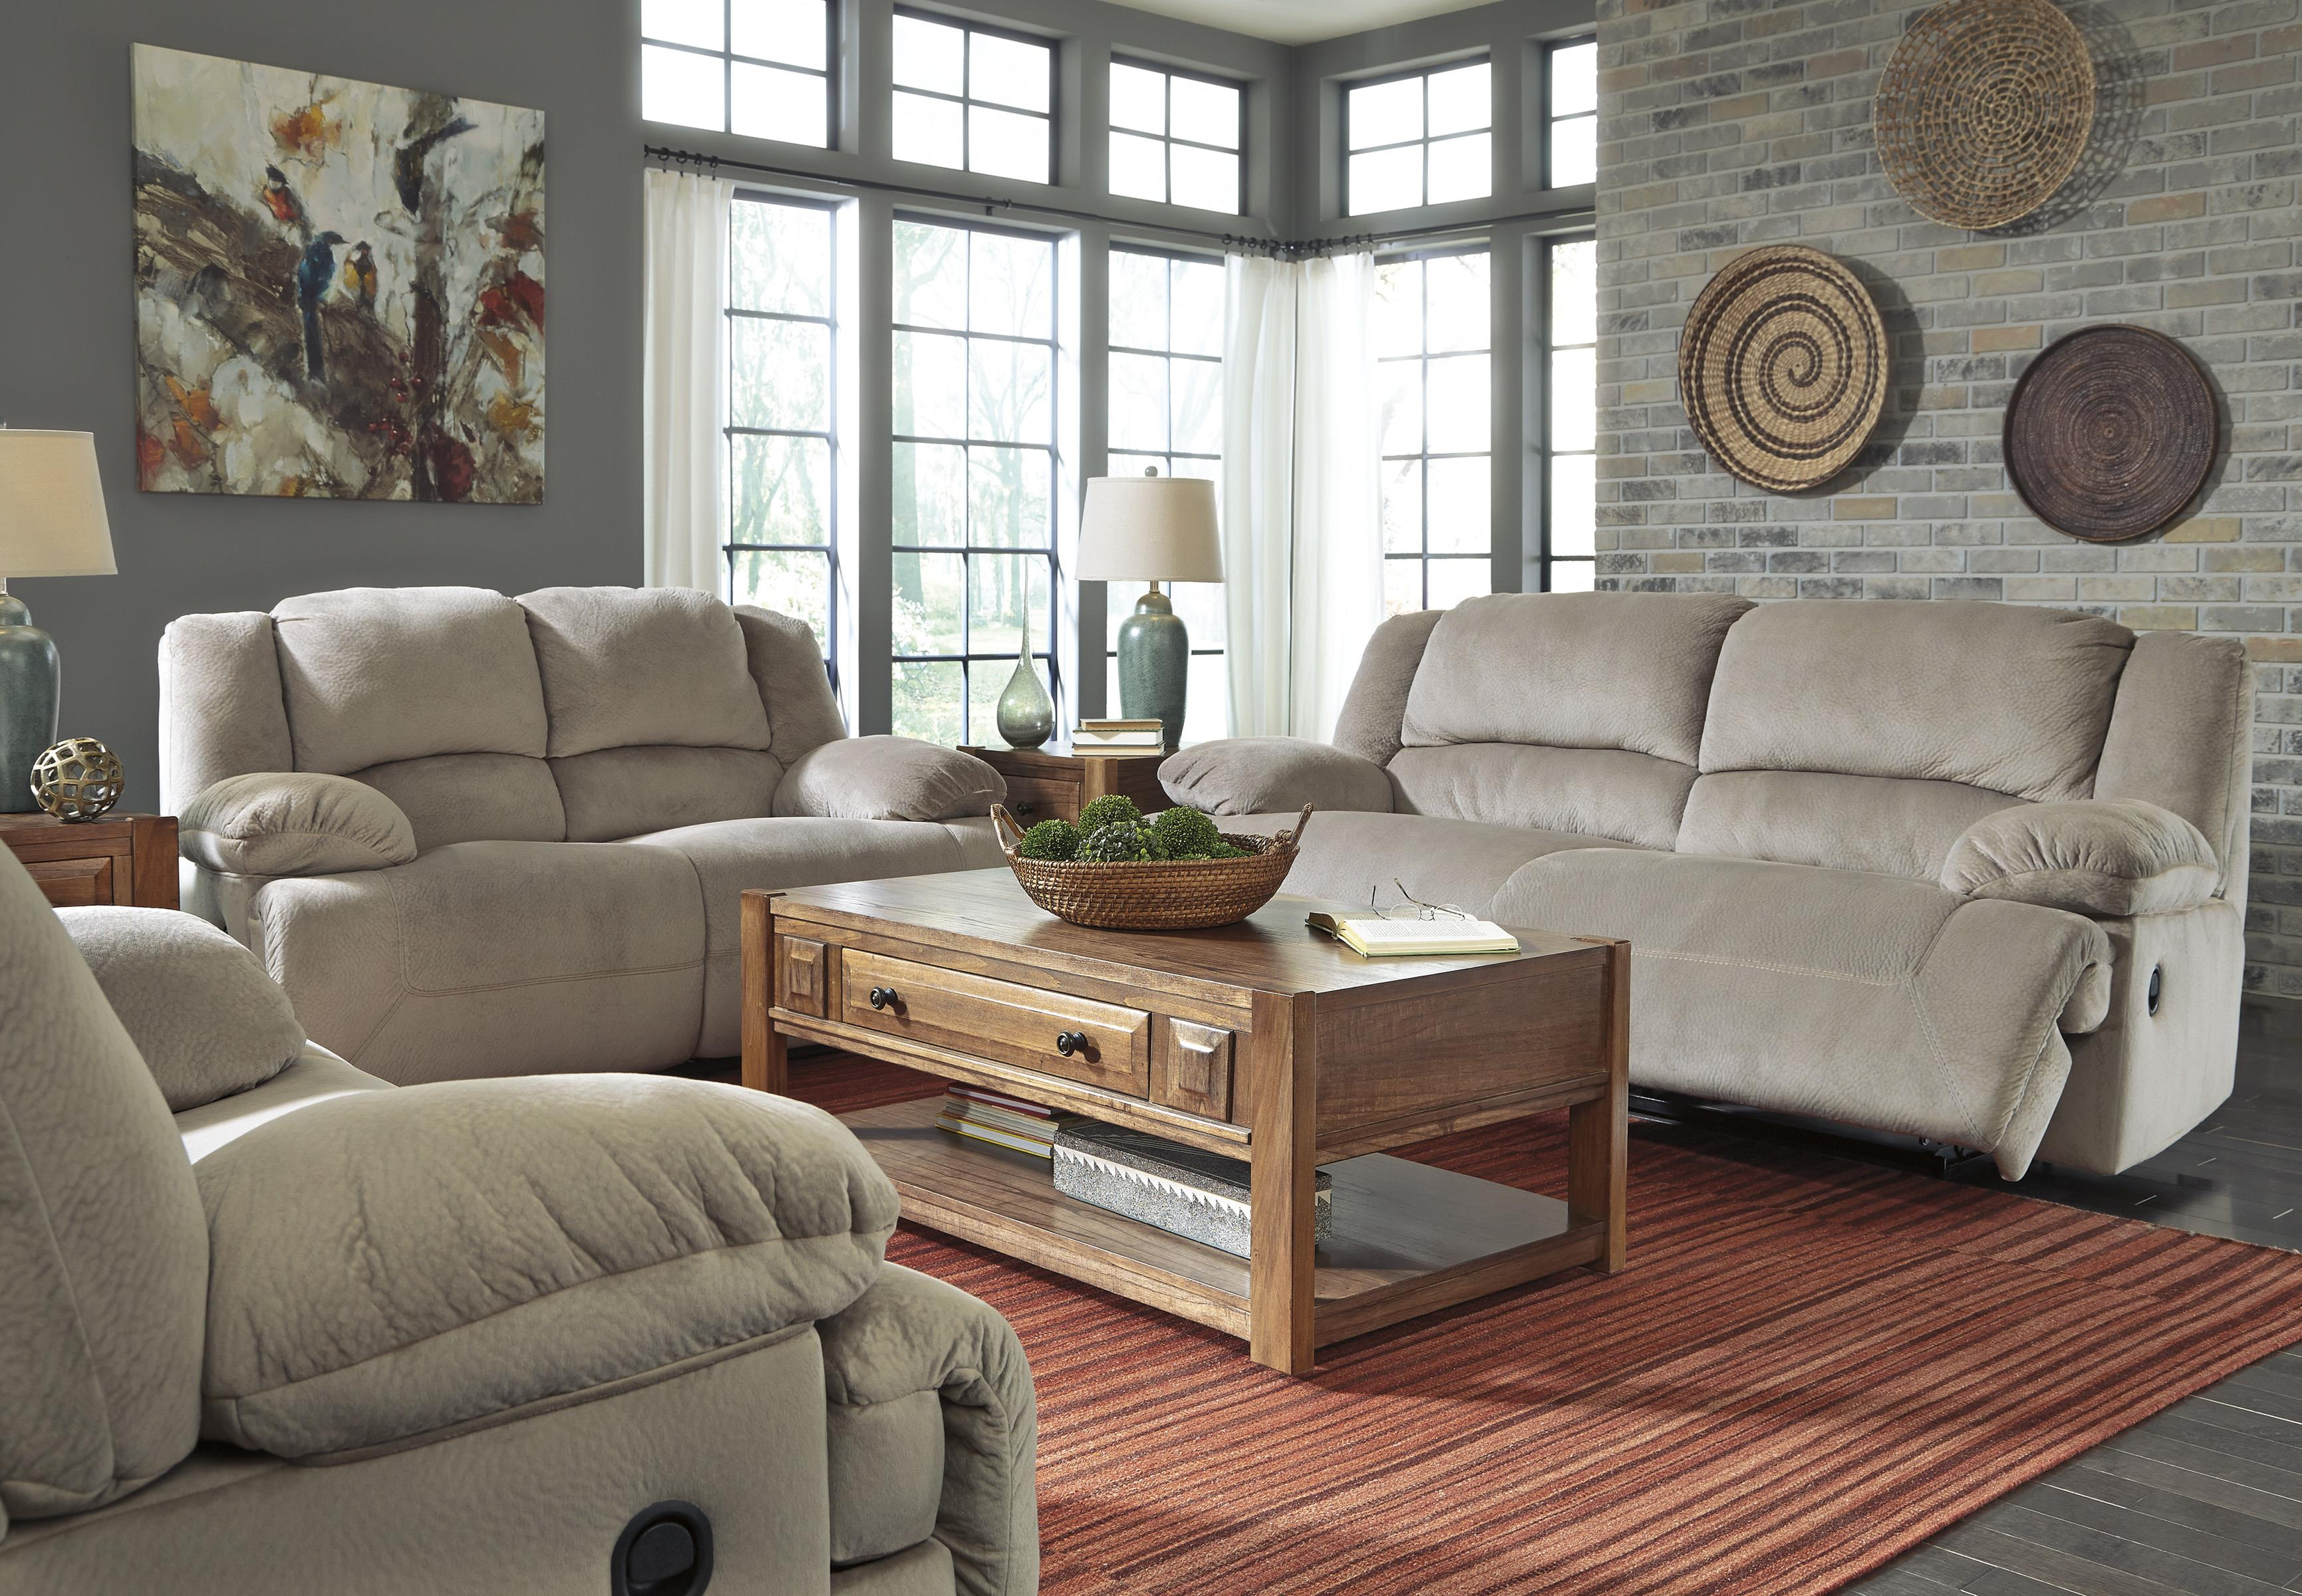 Signature Design by Ashley Toletta - Granite Reclining Living Room Group - Item Number: 56703 Living Room Group 2